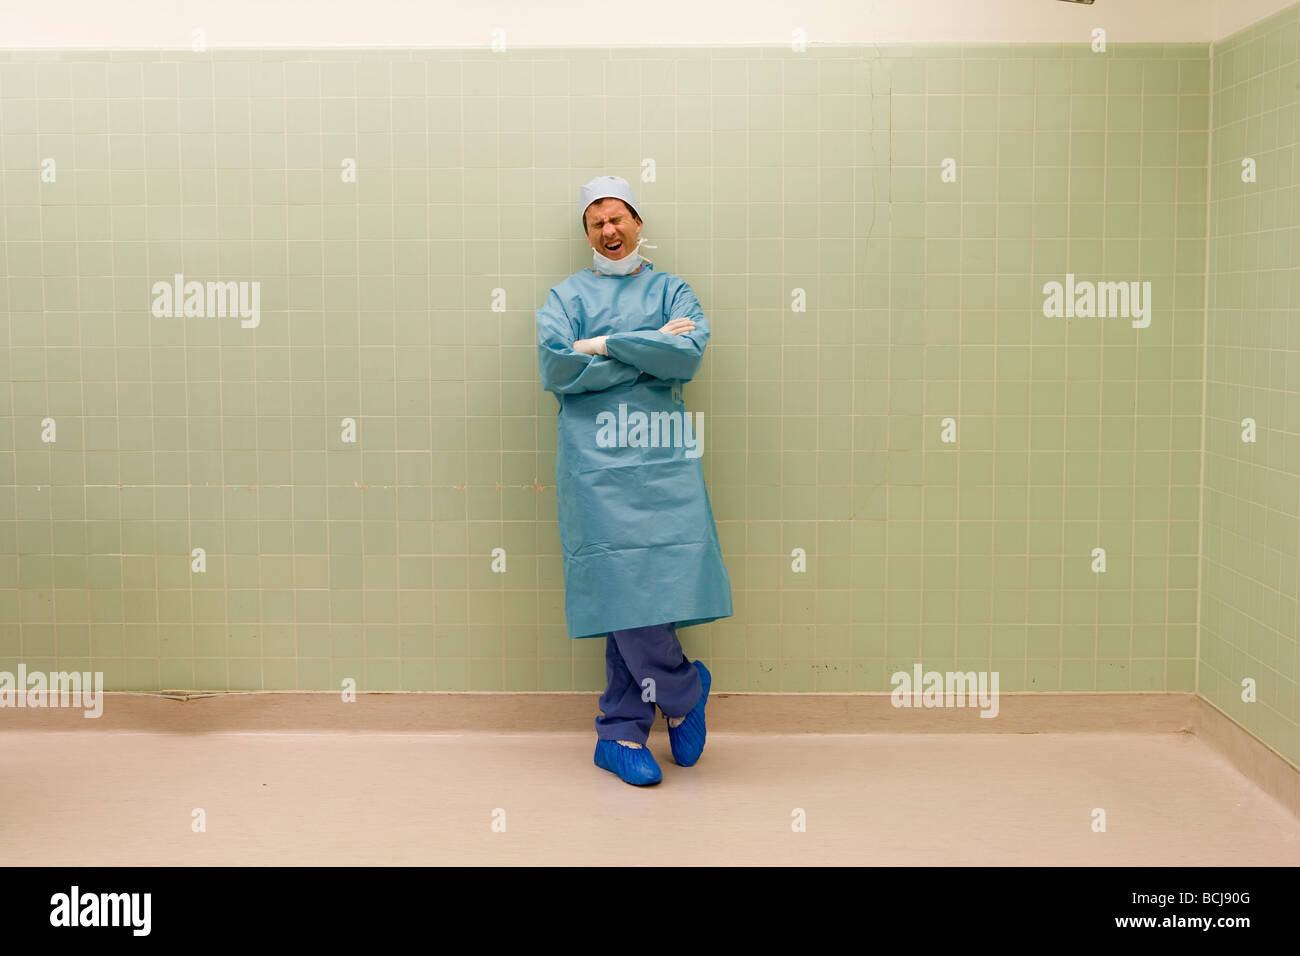 Caucasian male surgeon/doctor in blue surgical scrubs leaning against green tile wall yawning. - Stock Image